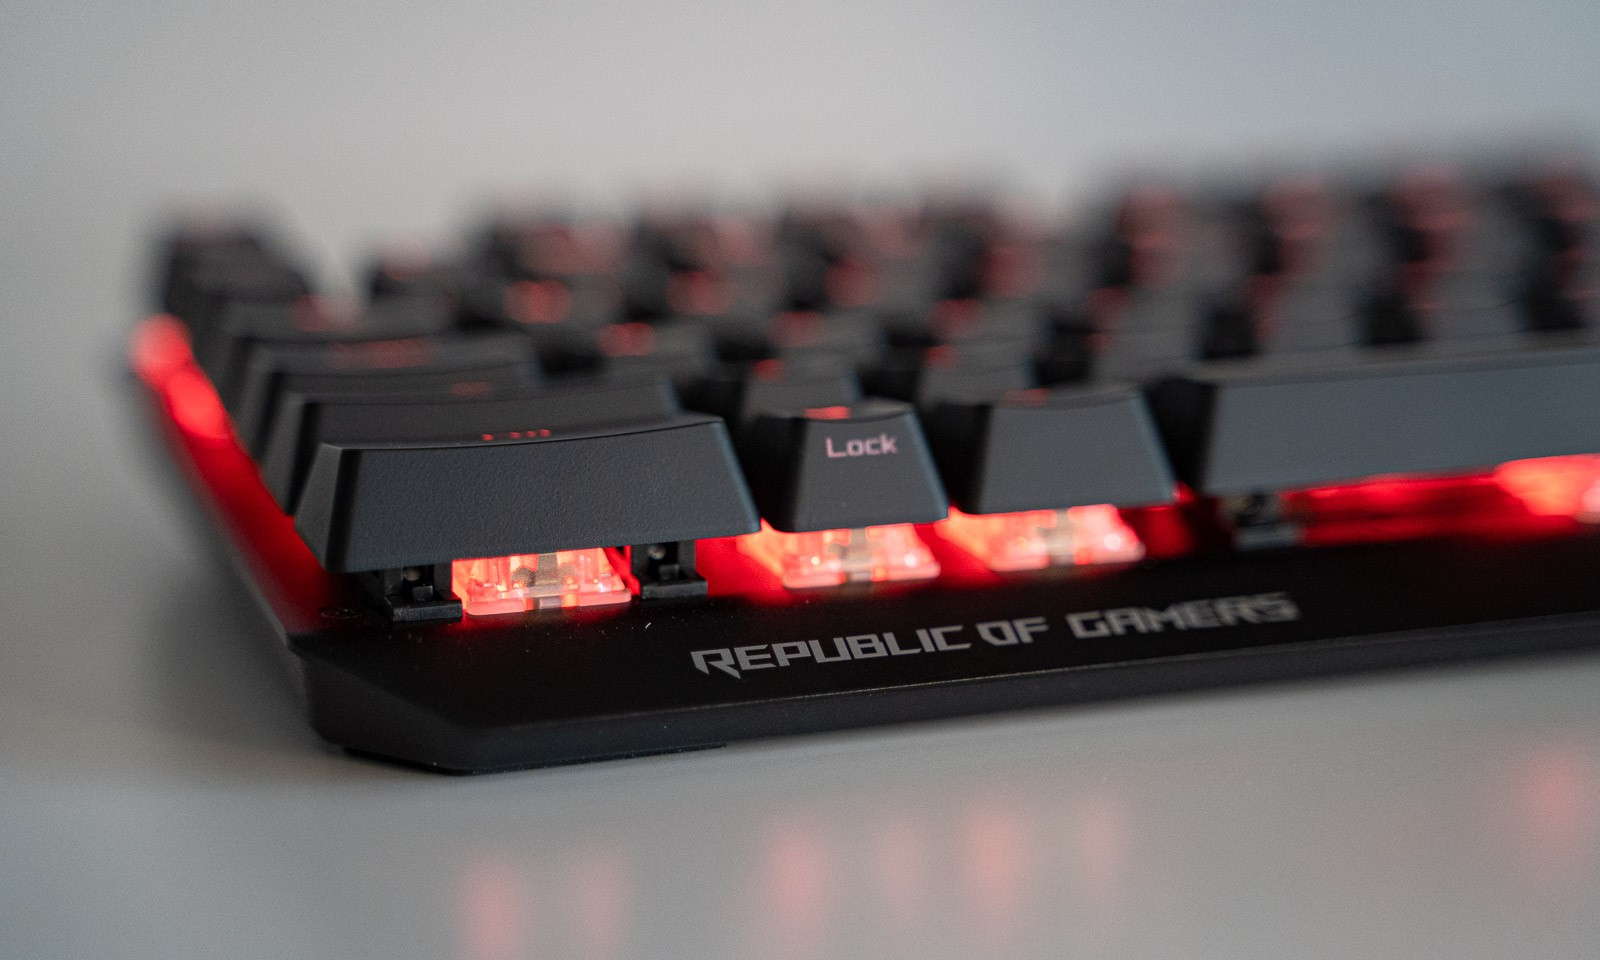 Tastatura de gaming ROG Strix Scope - review